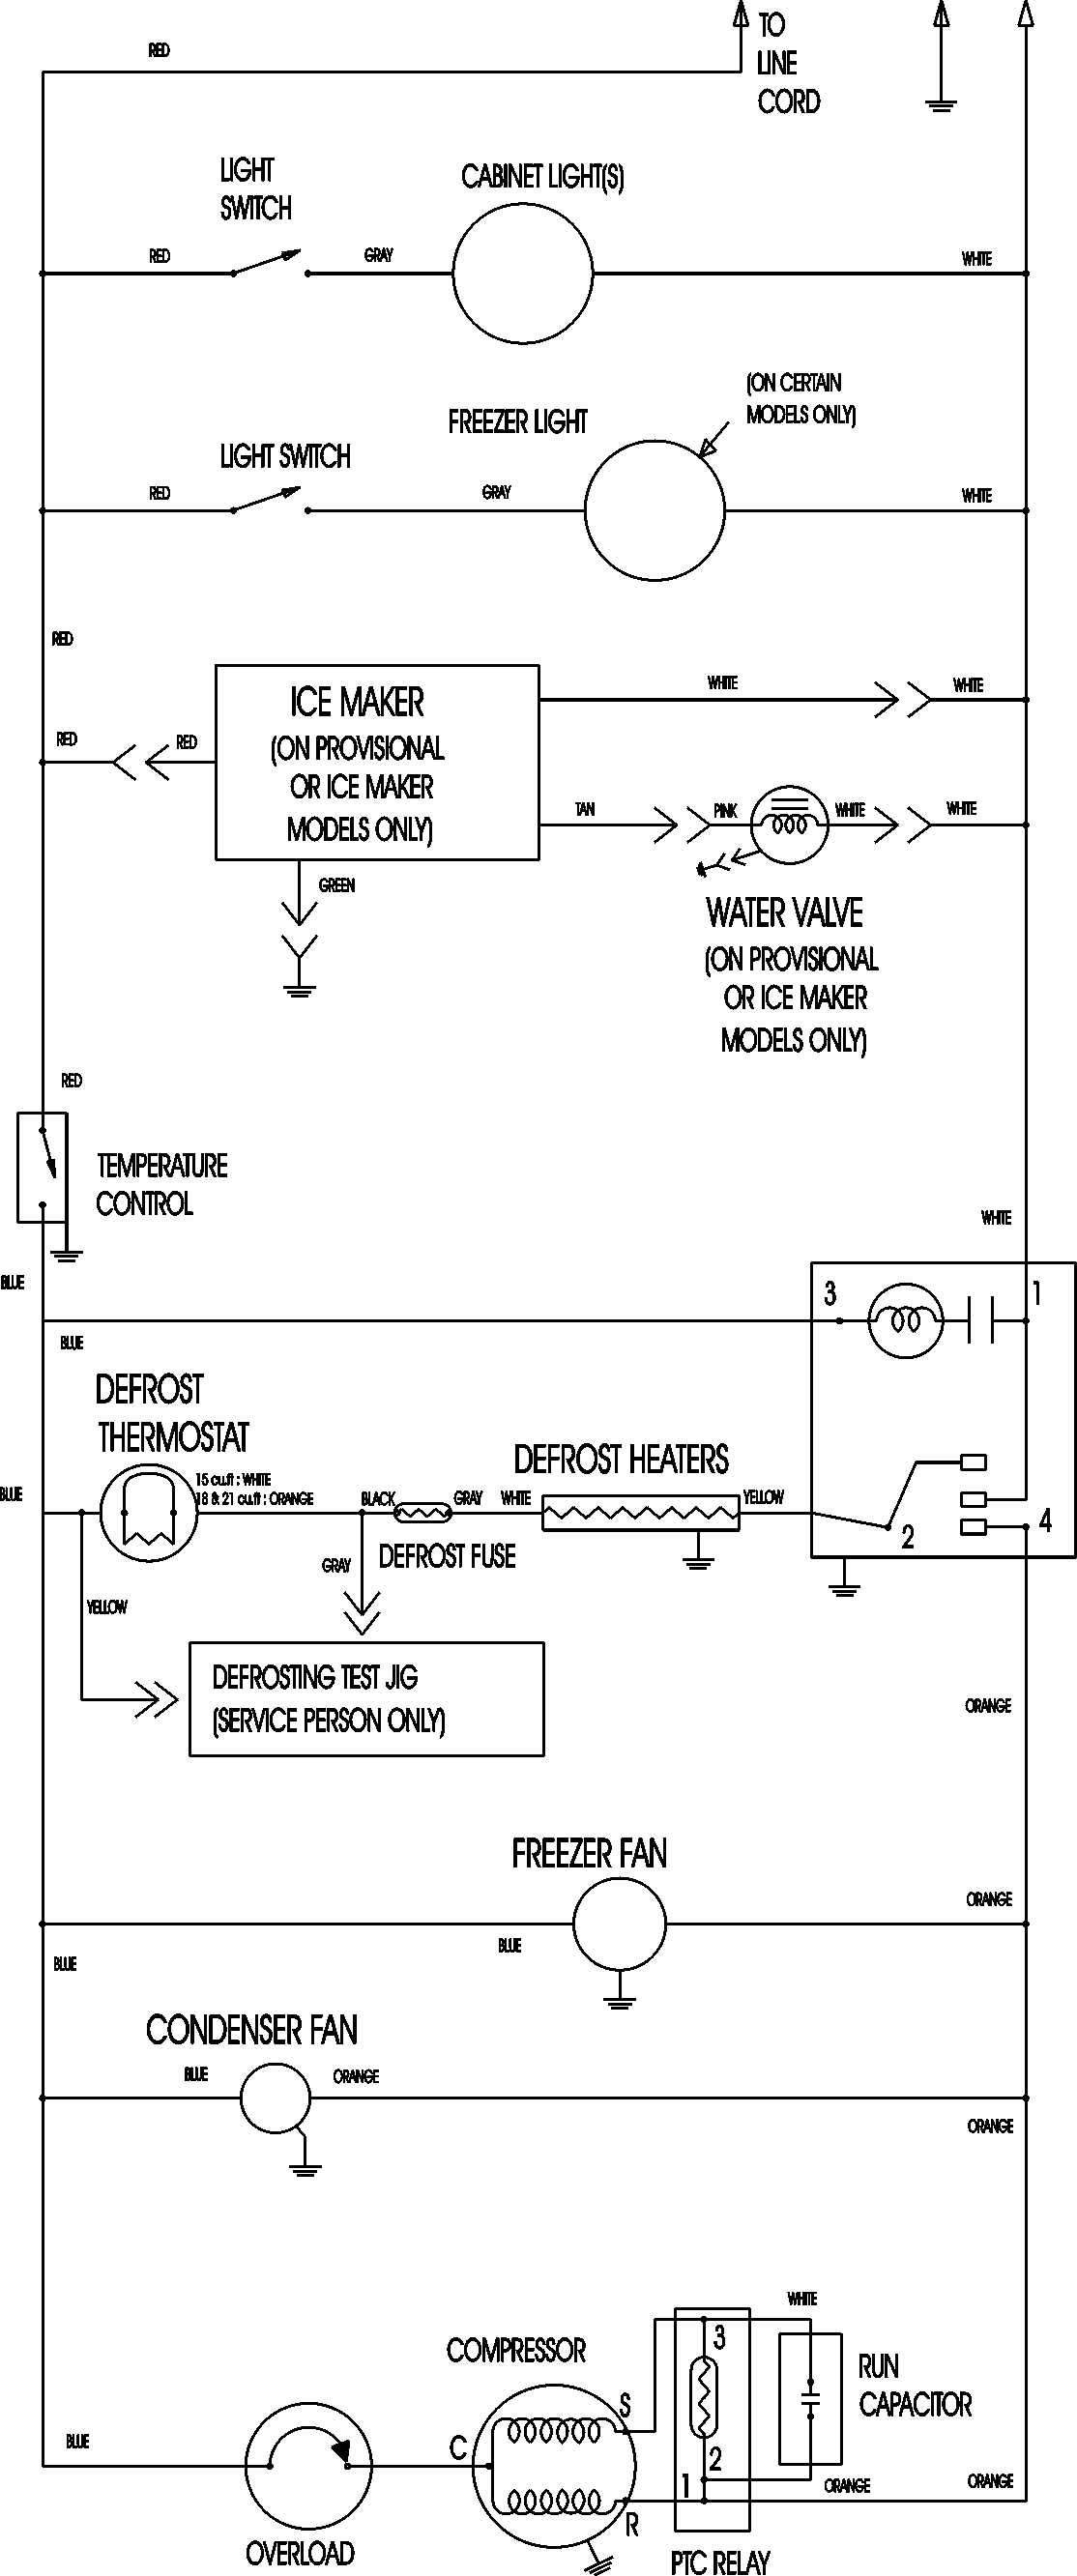 hight resolution of refrigeration wiring images